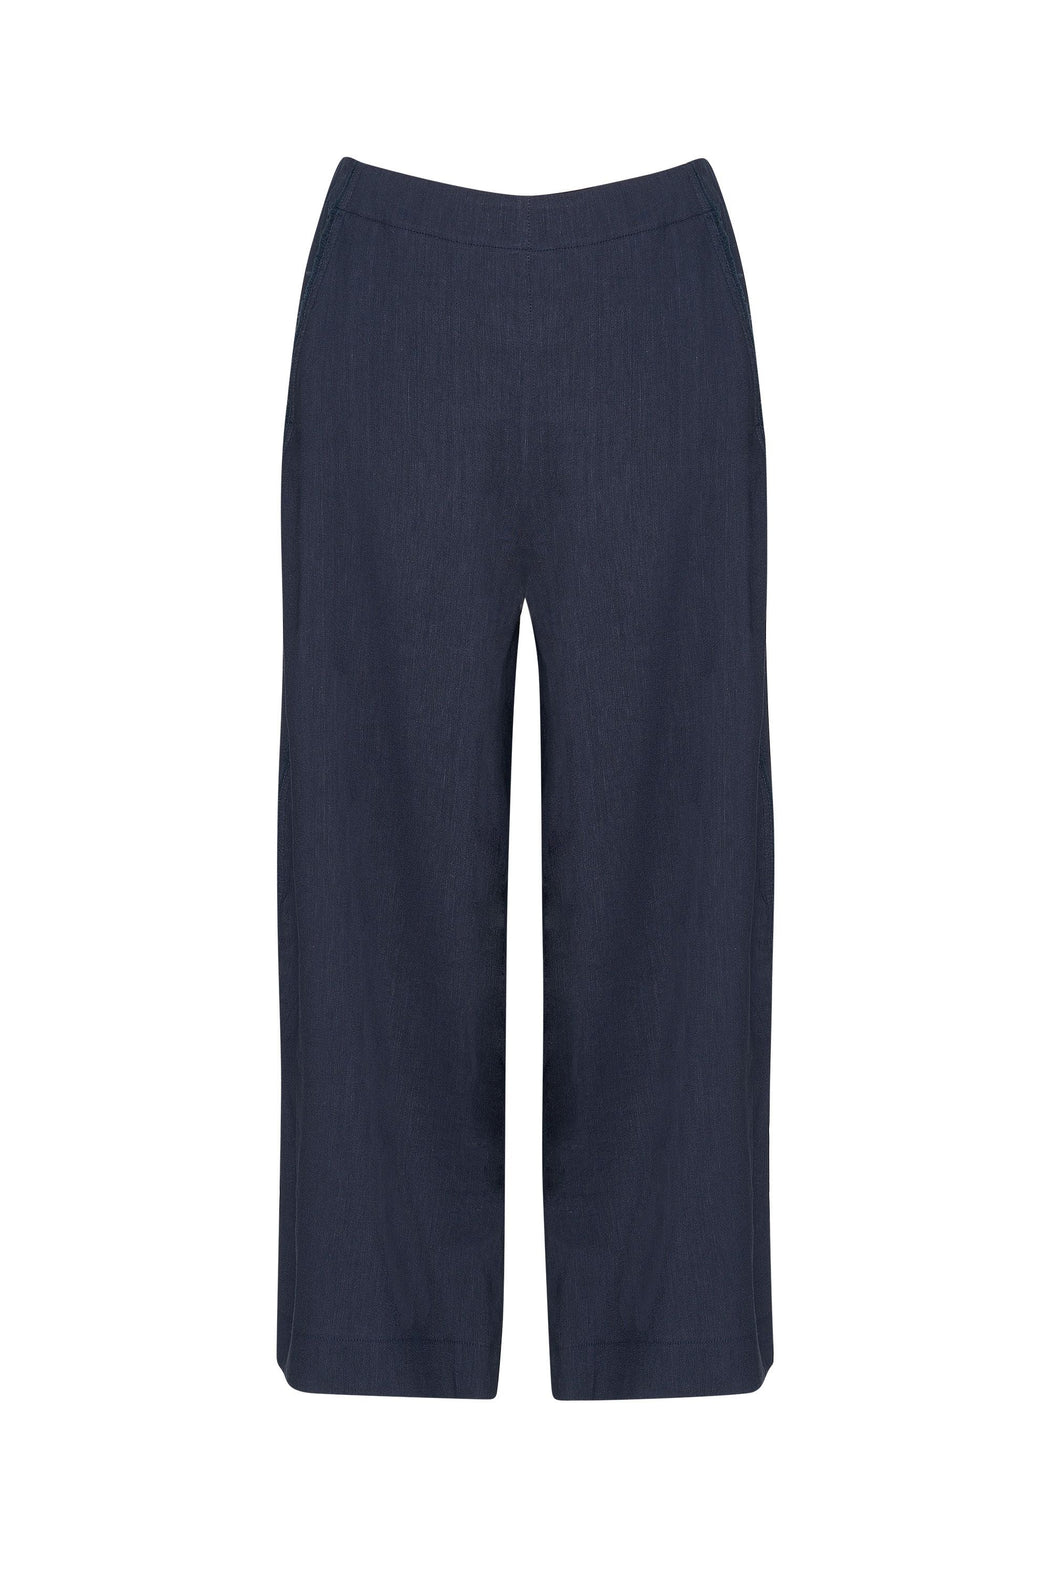 Loobies Story Eloa Culotte - Indigo | Shop at Wallace and Gibbs NZ